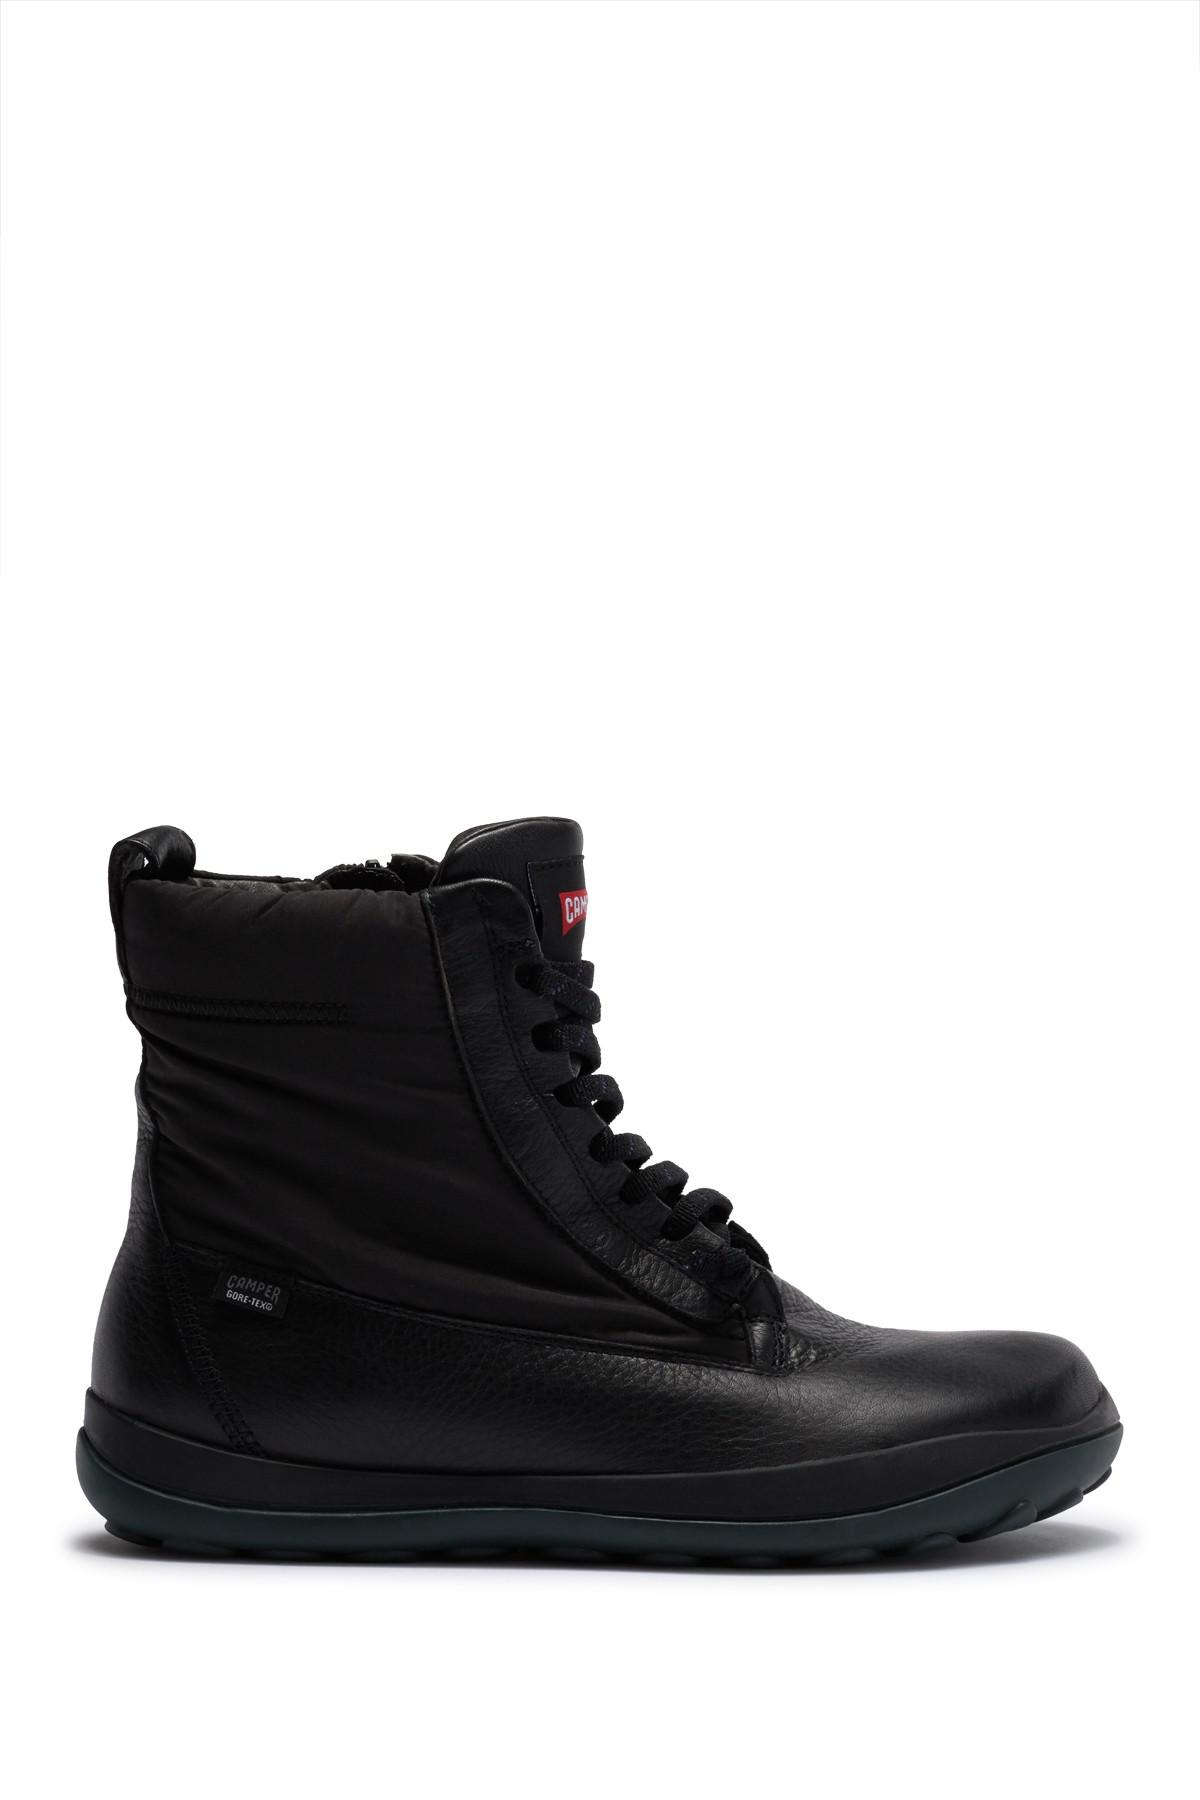 CAMPER Peu Pista Leather Snow Boot YWccgM2OUT